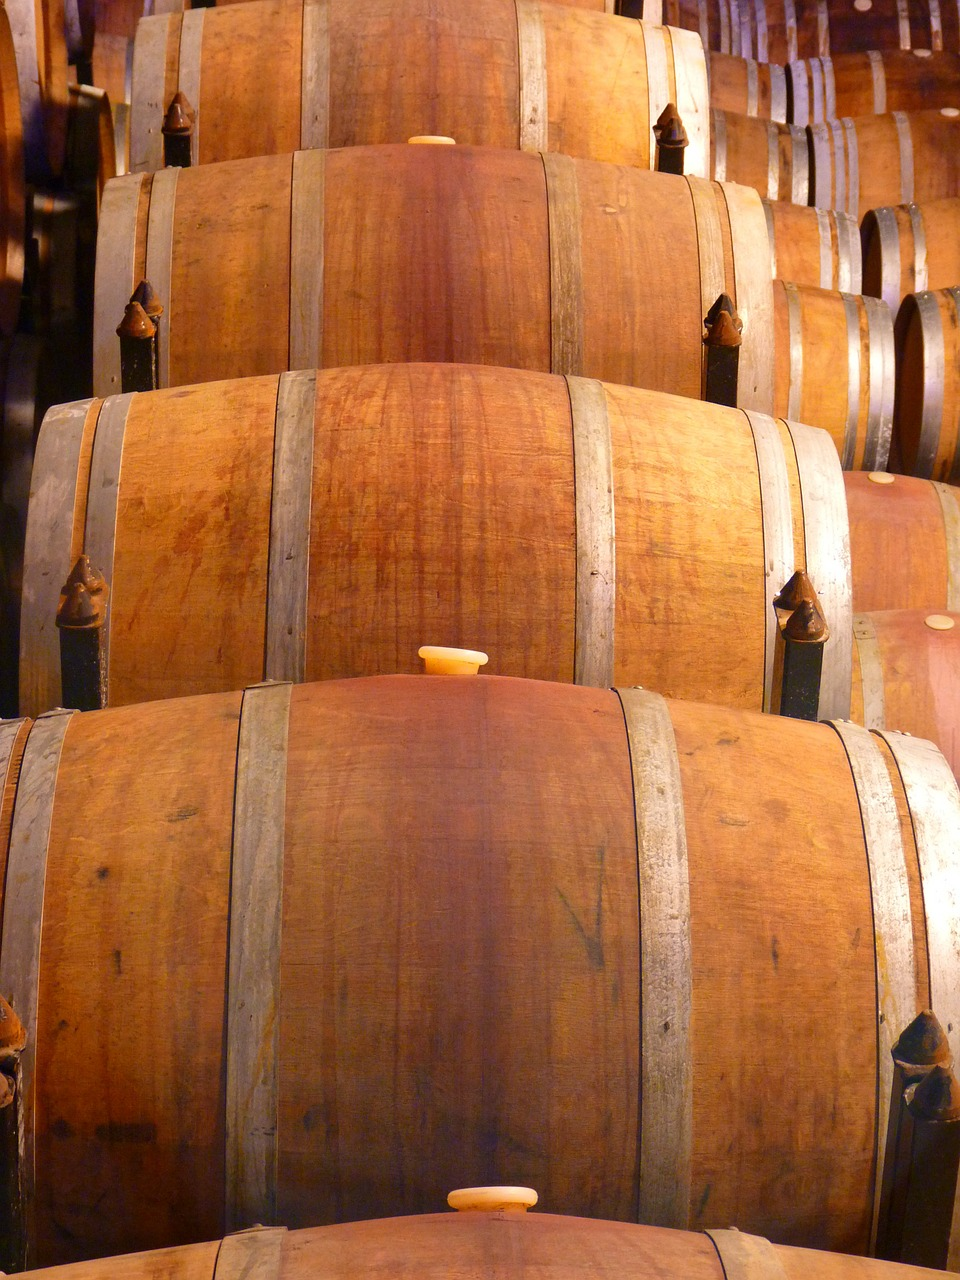 barrel wine wine barrels free picture